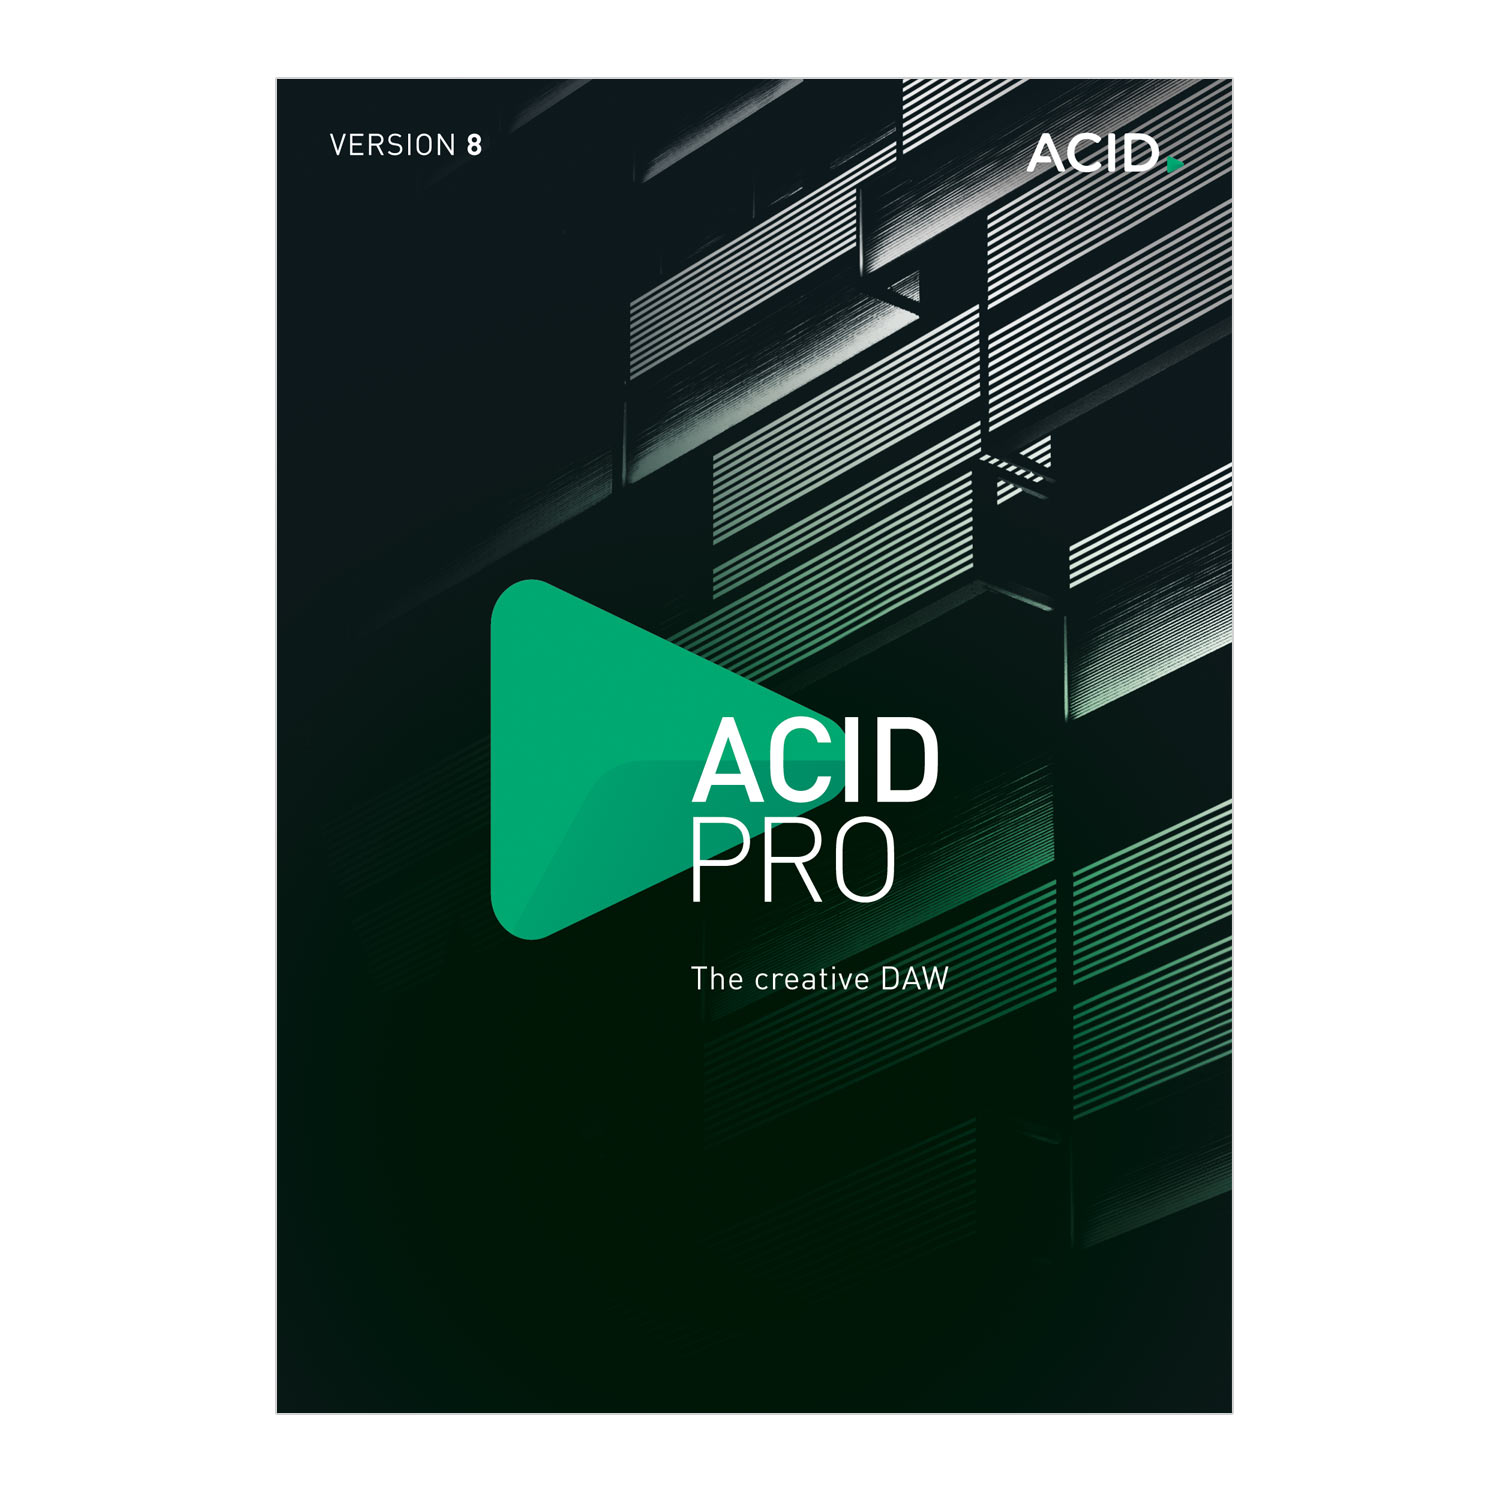 ACID Pro - Version 8 - Professional music production with ACIDized loops [Download]